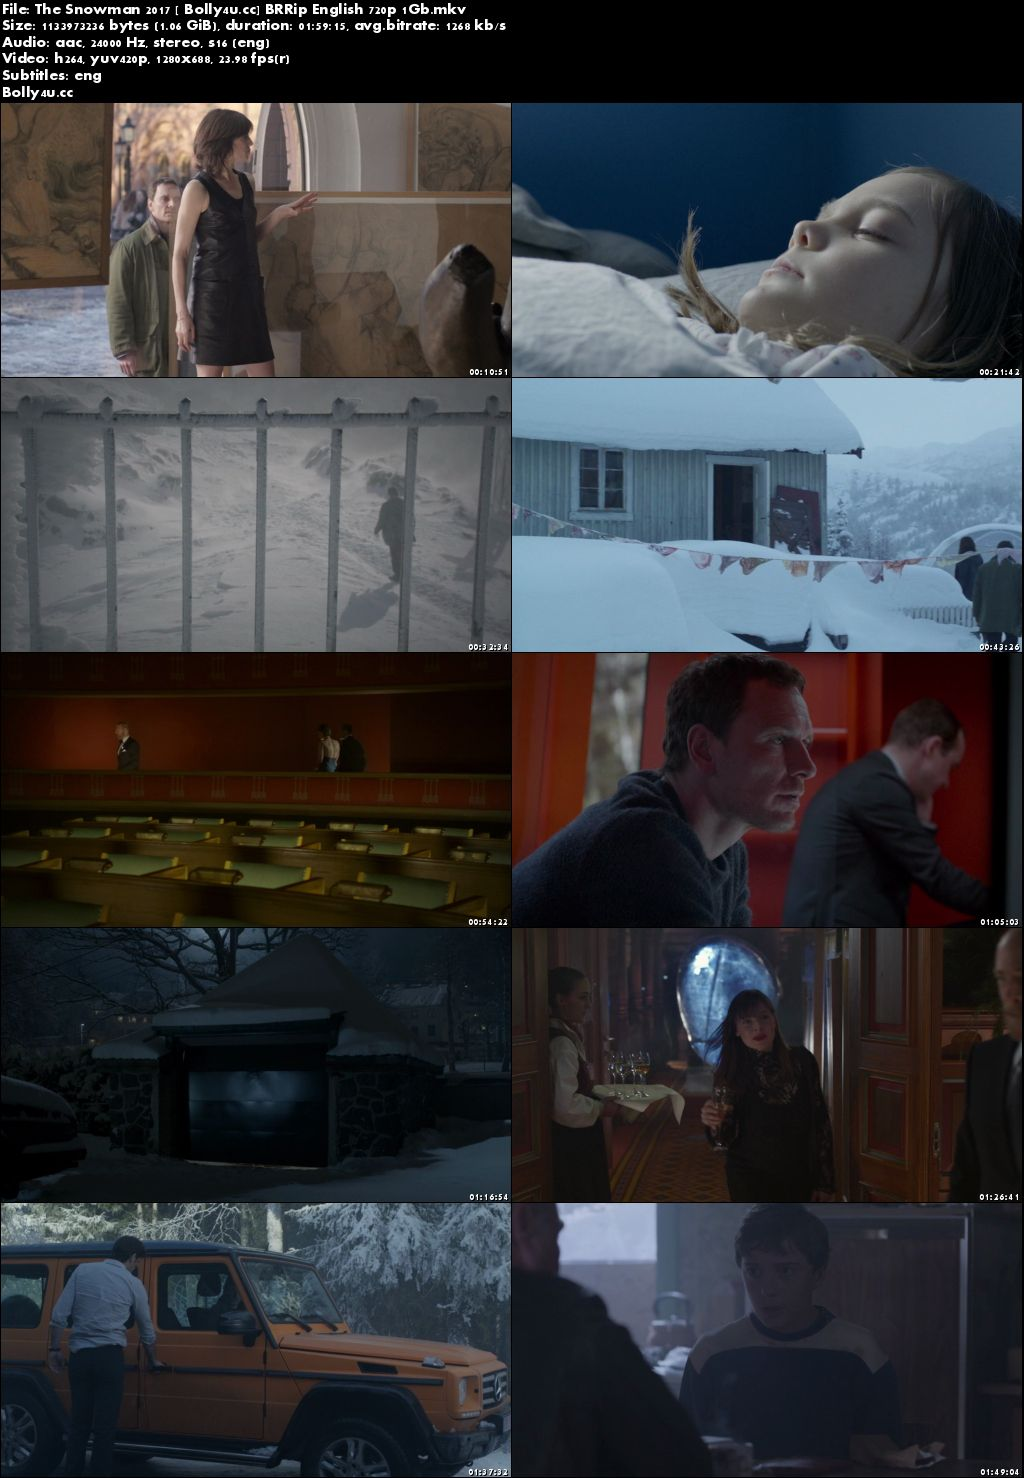 The Snowman 2017 BRRip 1Gb English 720p ESub Download